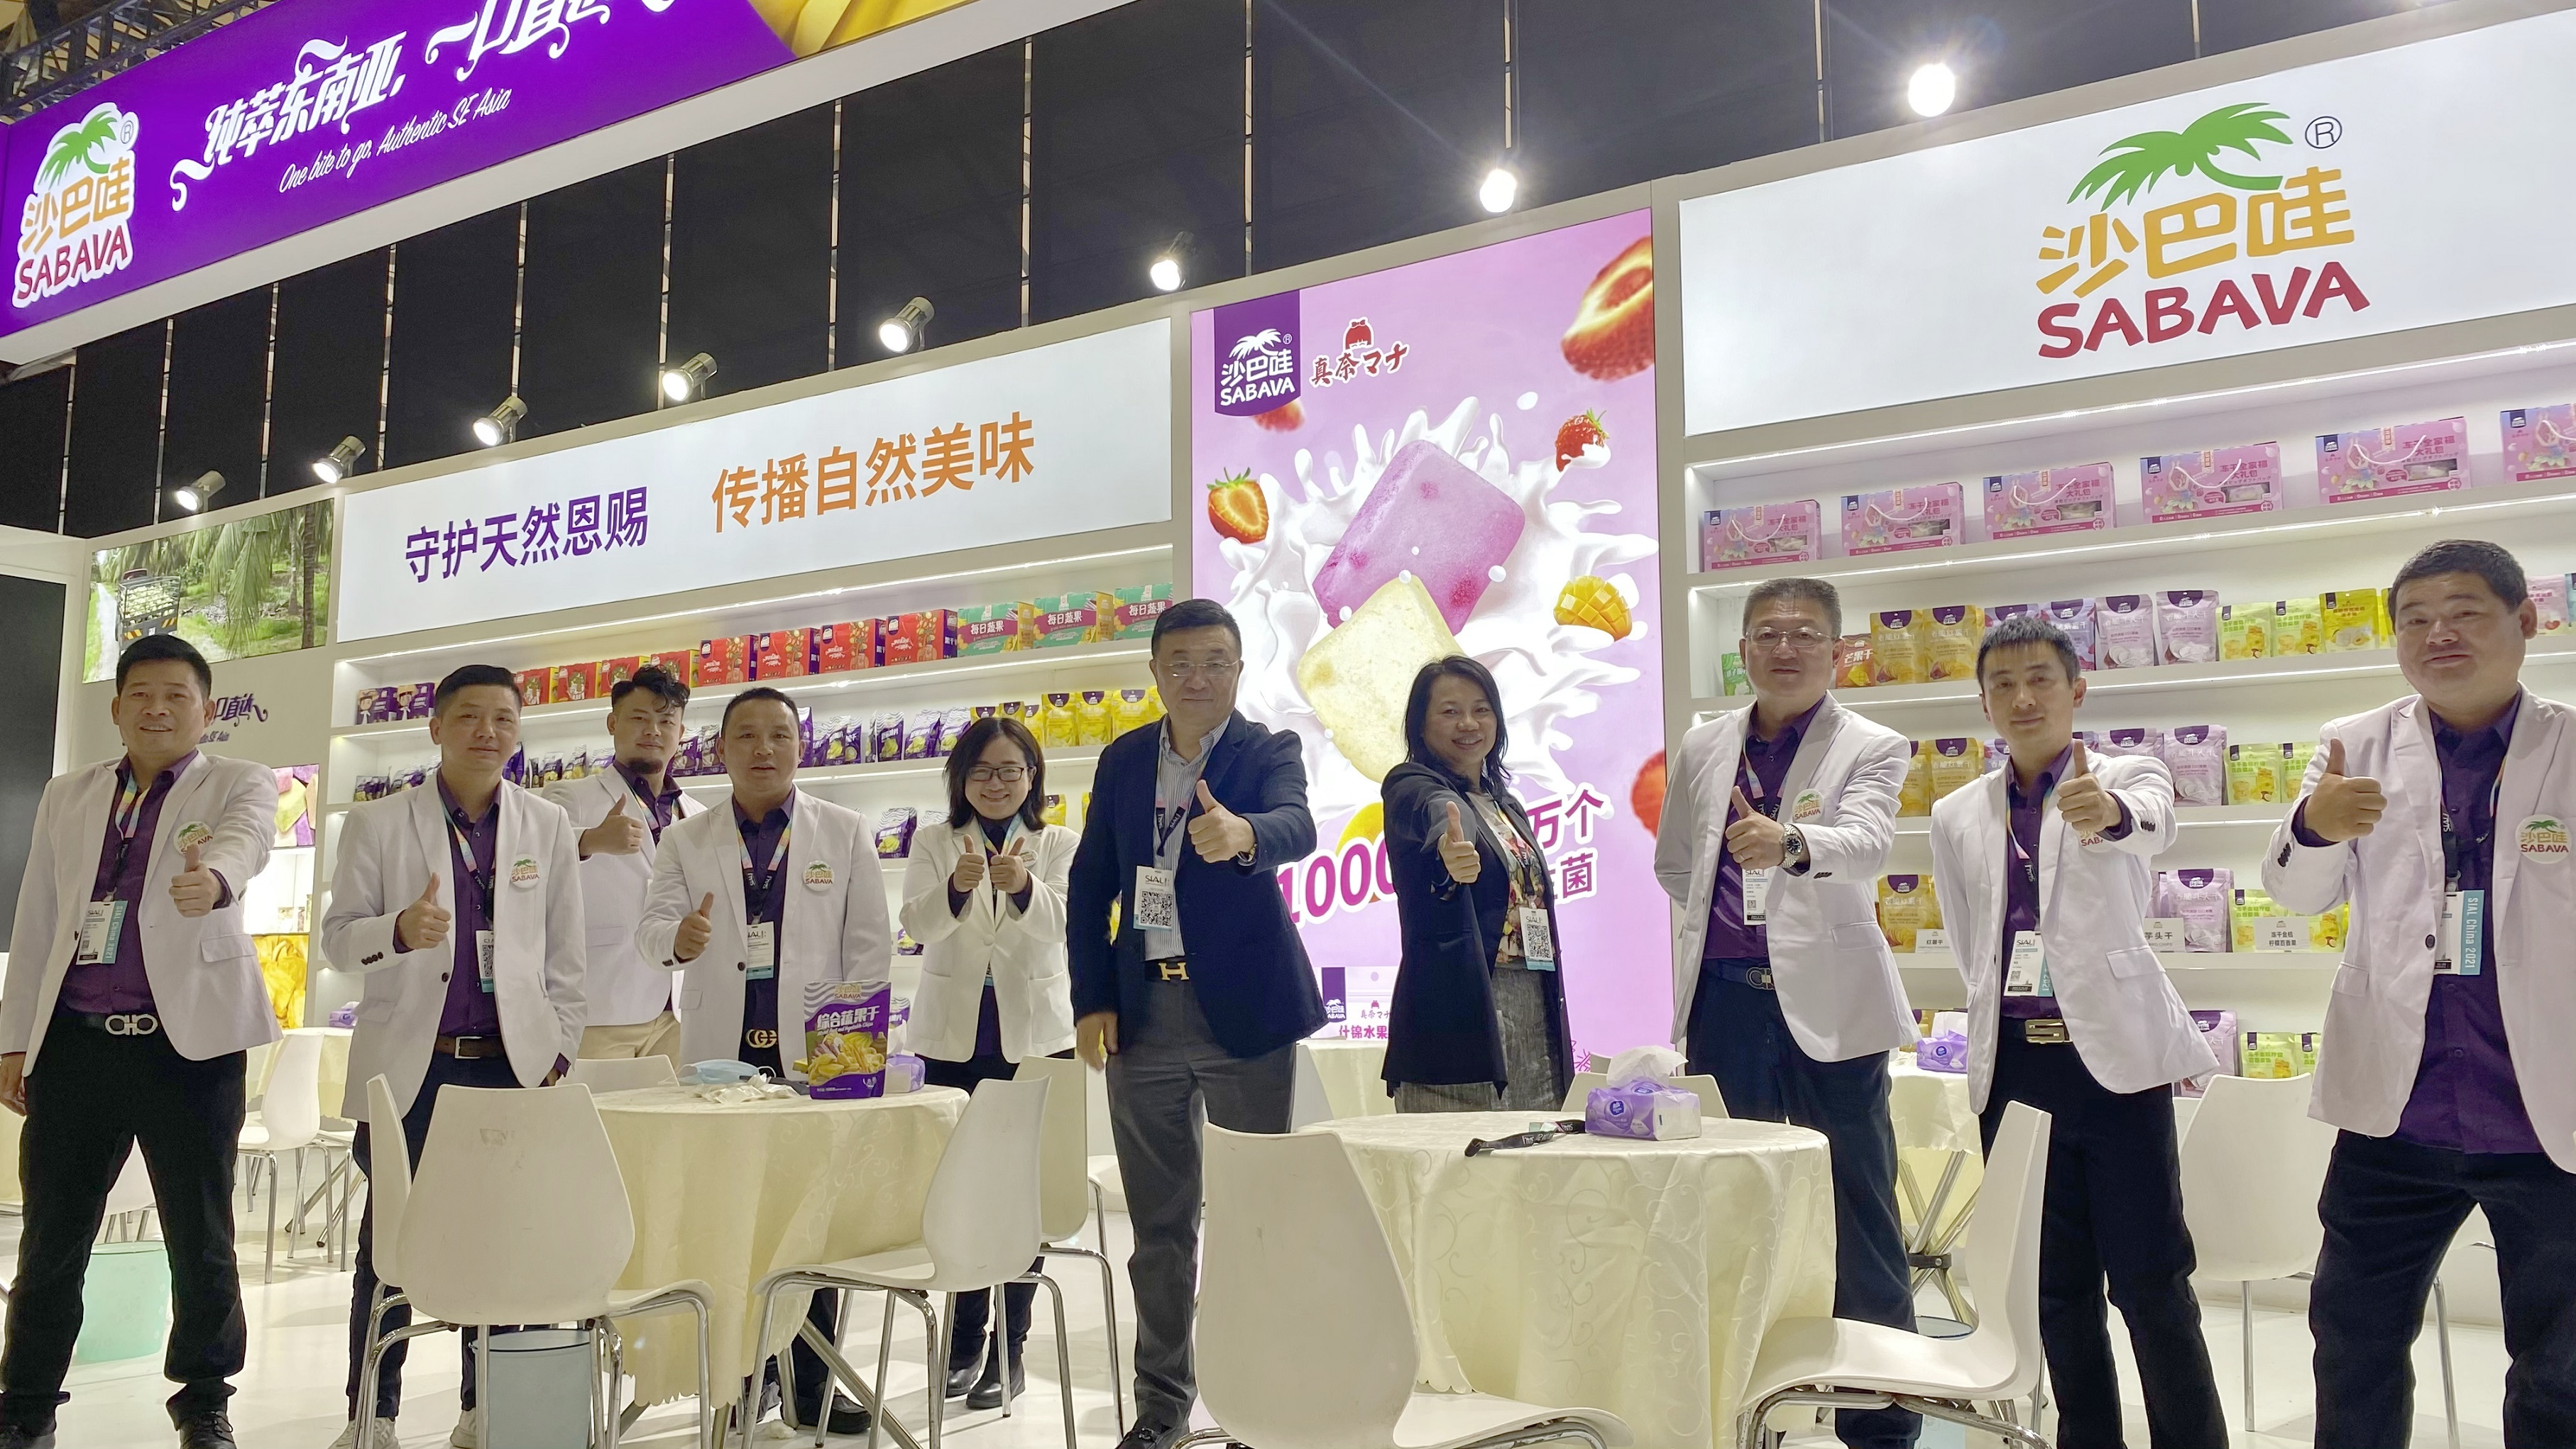 Sabava in SIAL China    On site contract signing,  Strength circle powder countless!